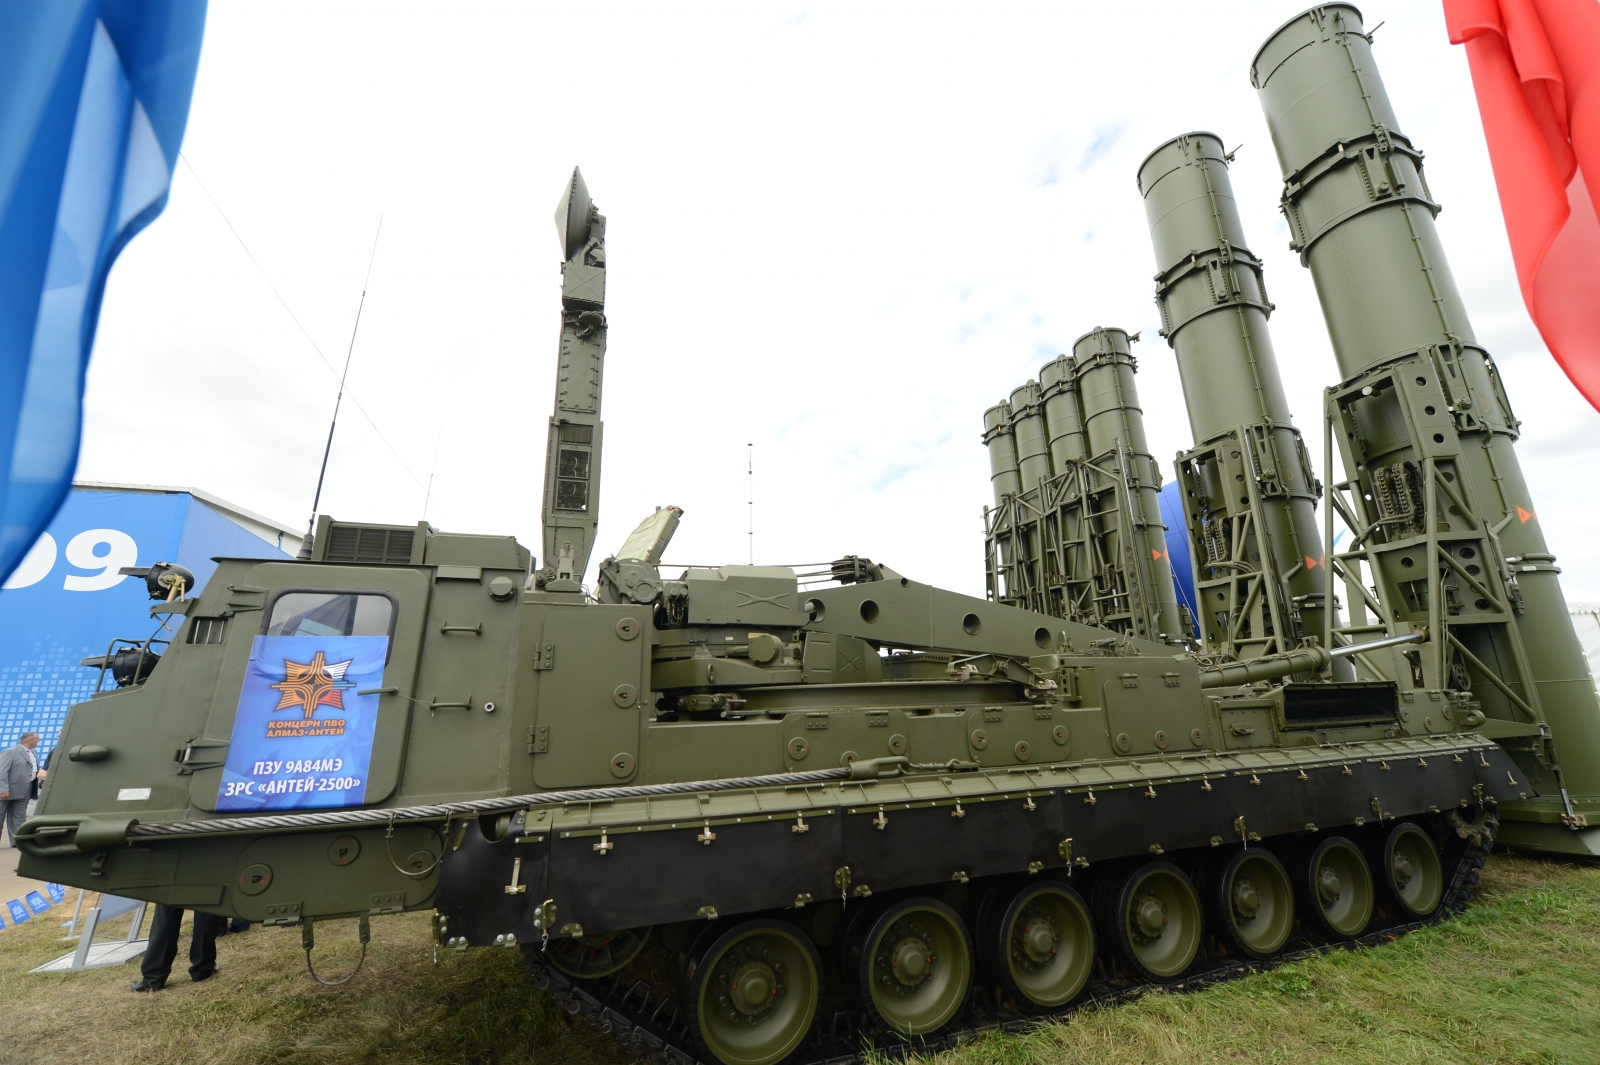 A 9A84ME launcher unit of the S-300VM 'Antey-2500'  anti-ballistic missile system. (KIRILL KUDRYAVTSEV/AFP/Getty Images)